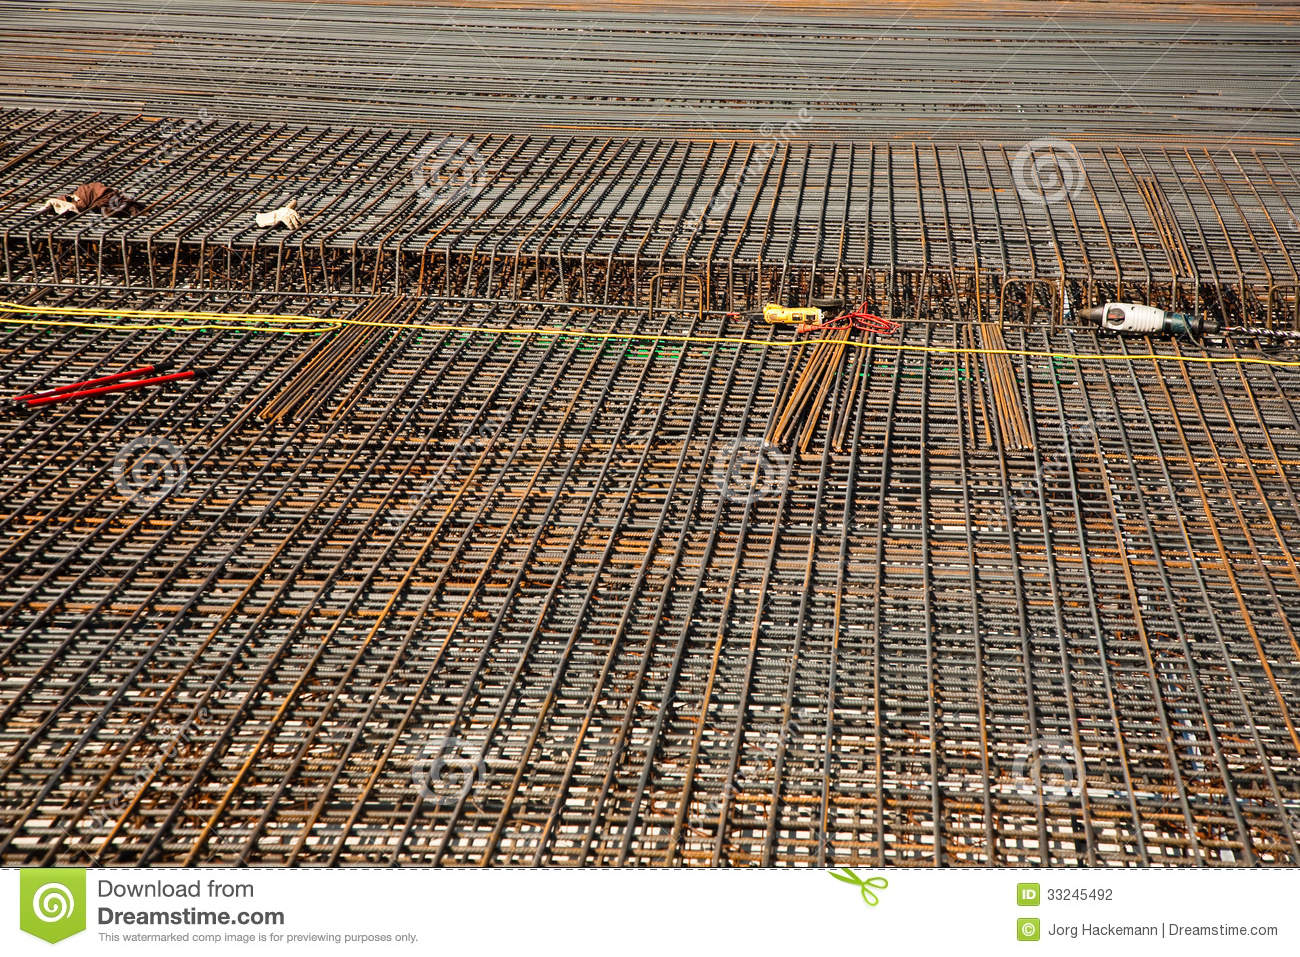 Armoring at the building site to stabilize the fundament made of